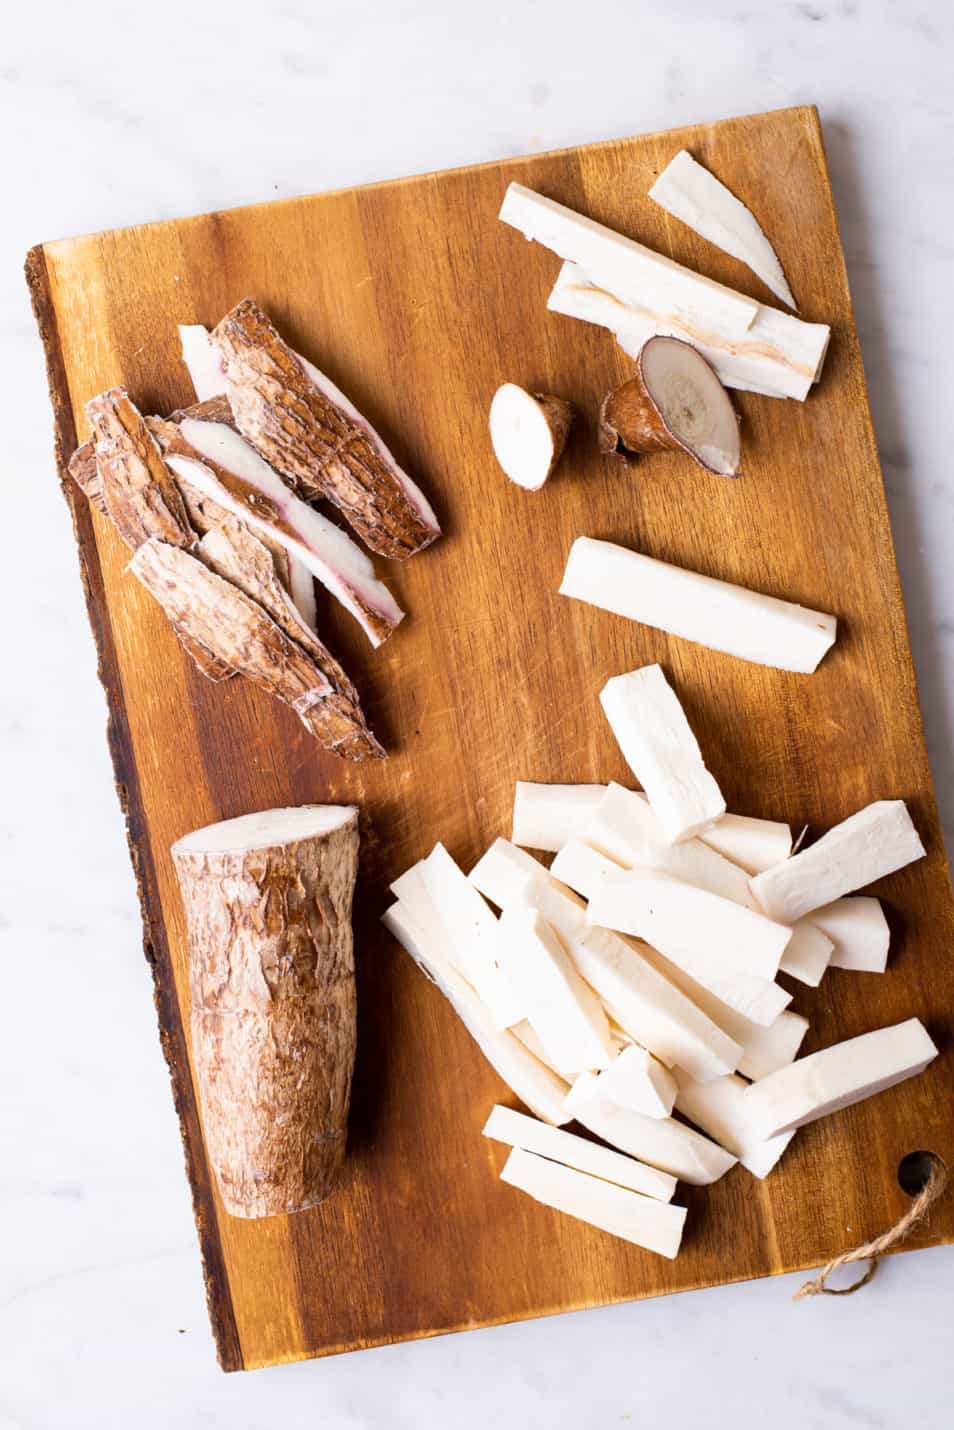 Peeled and chopped yuca on a cutting board.